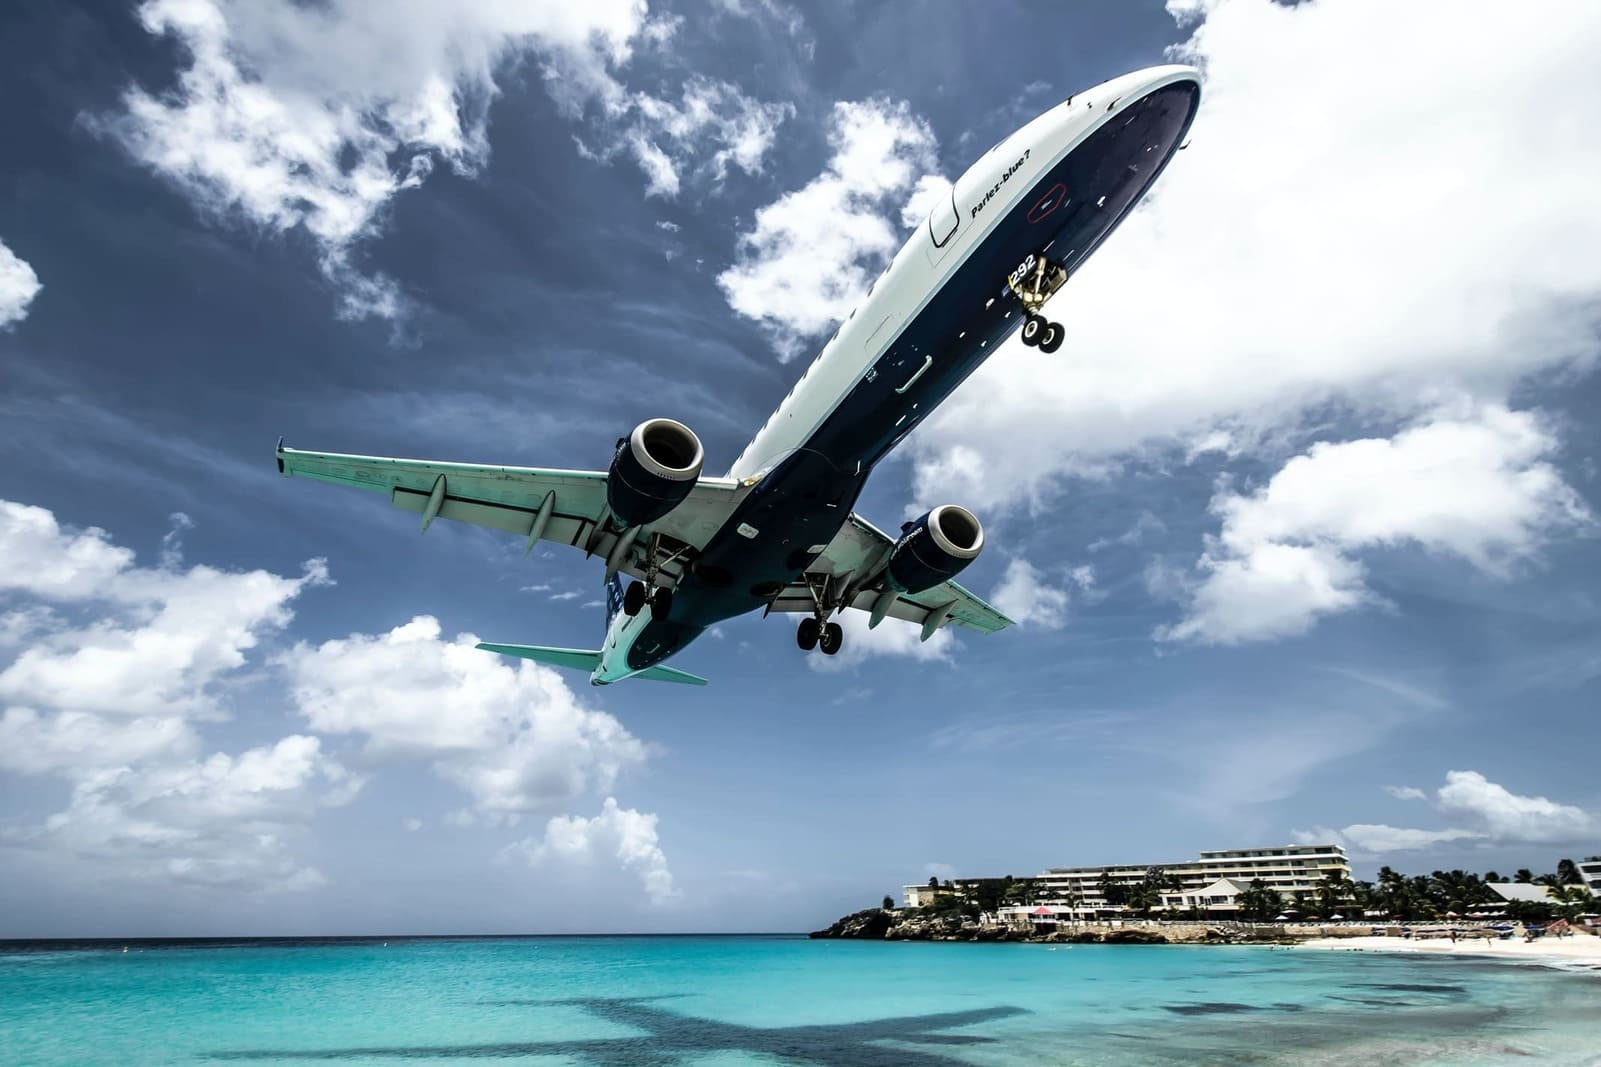 A low fly over of an airplane at St. Maarten